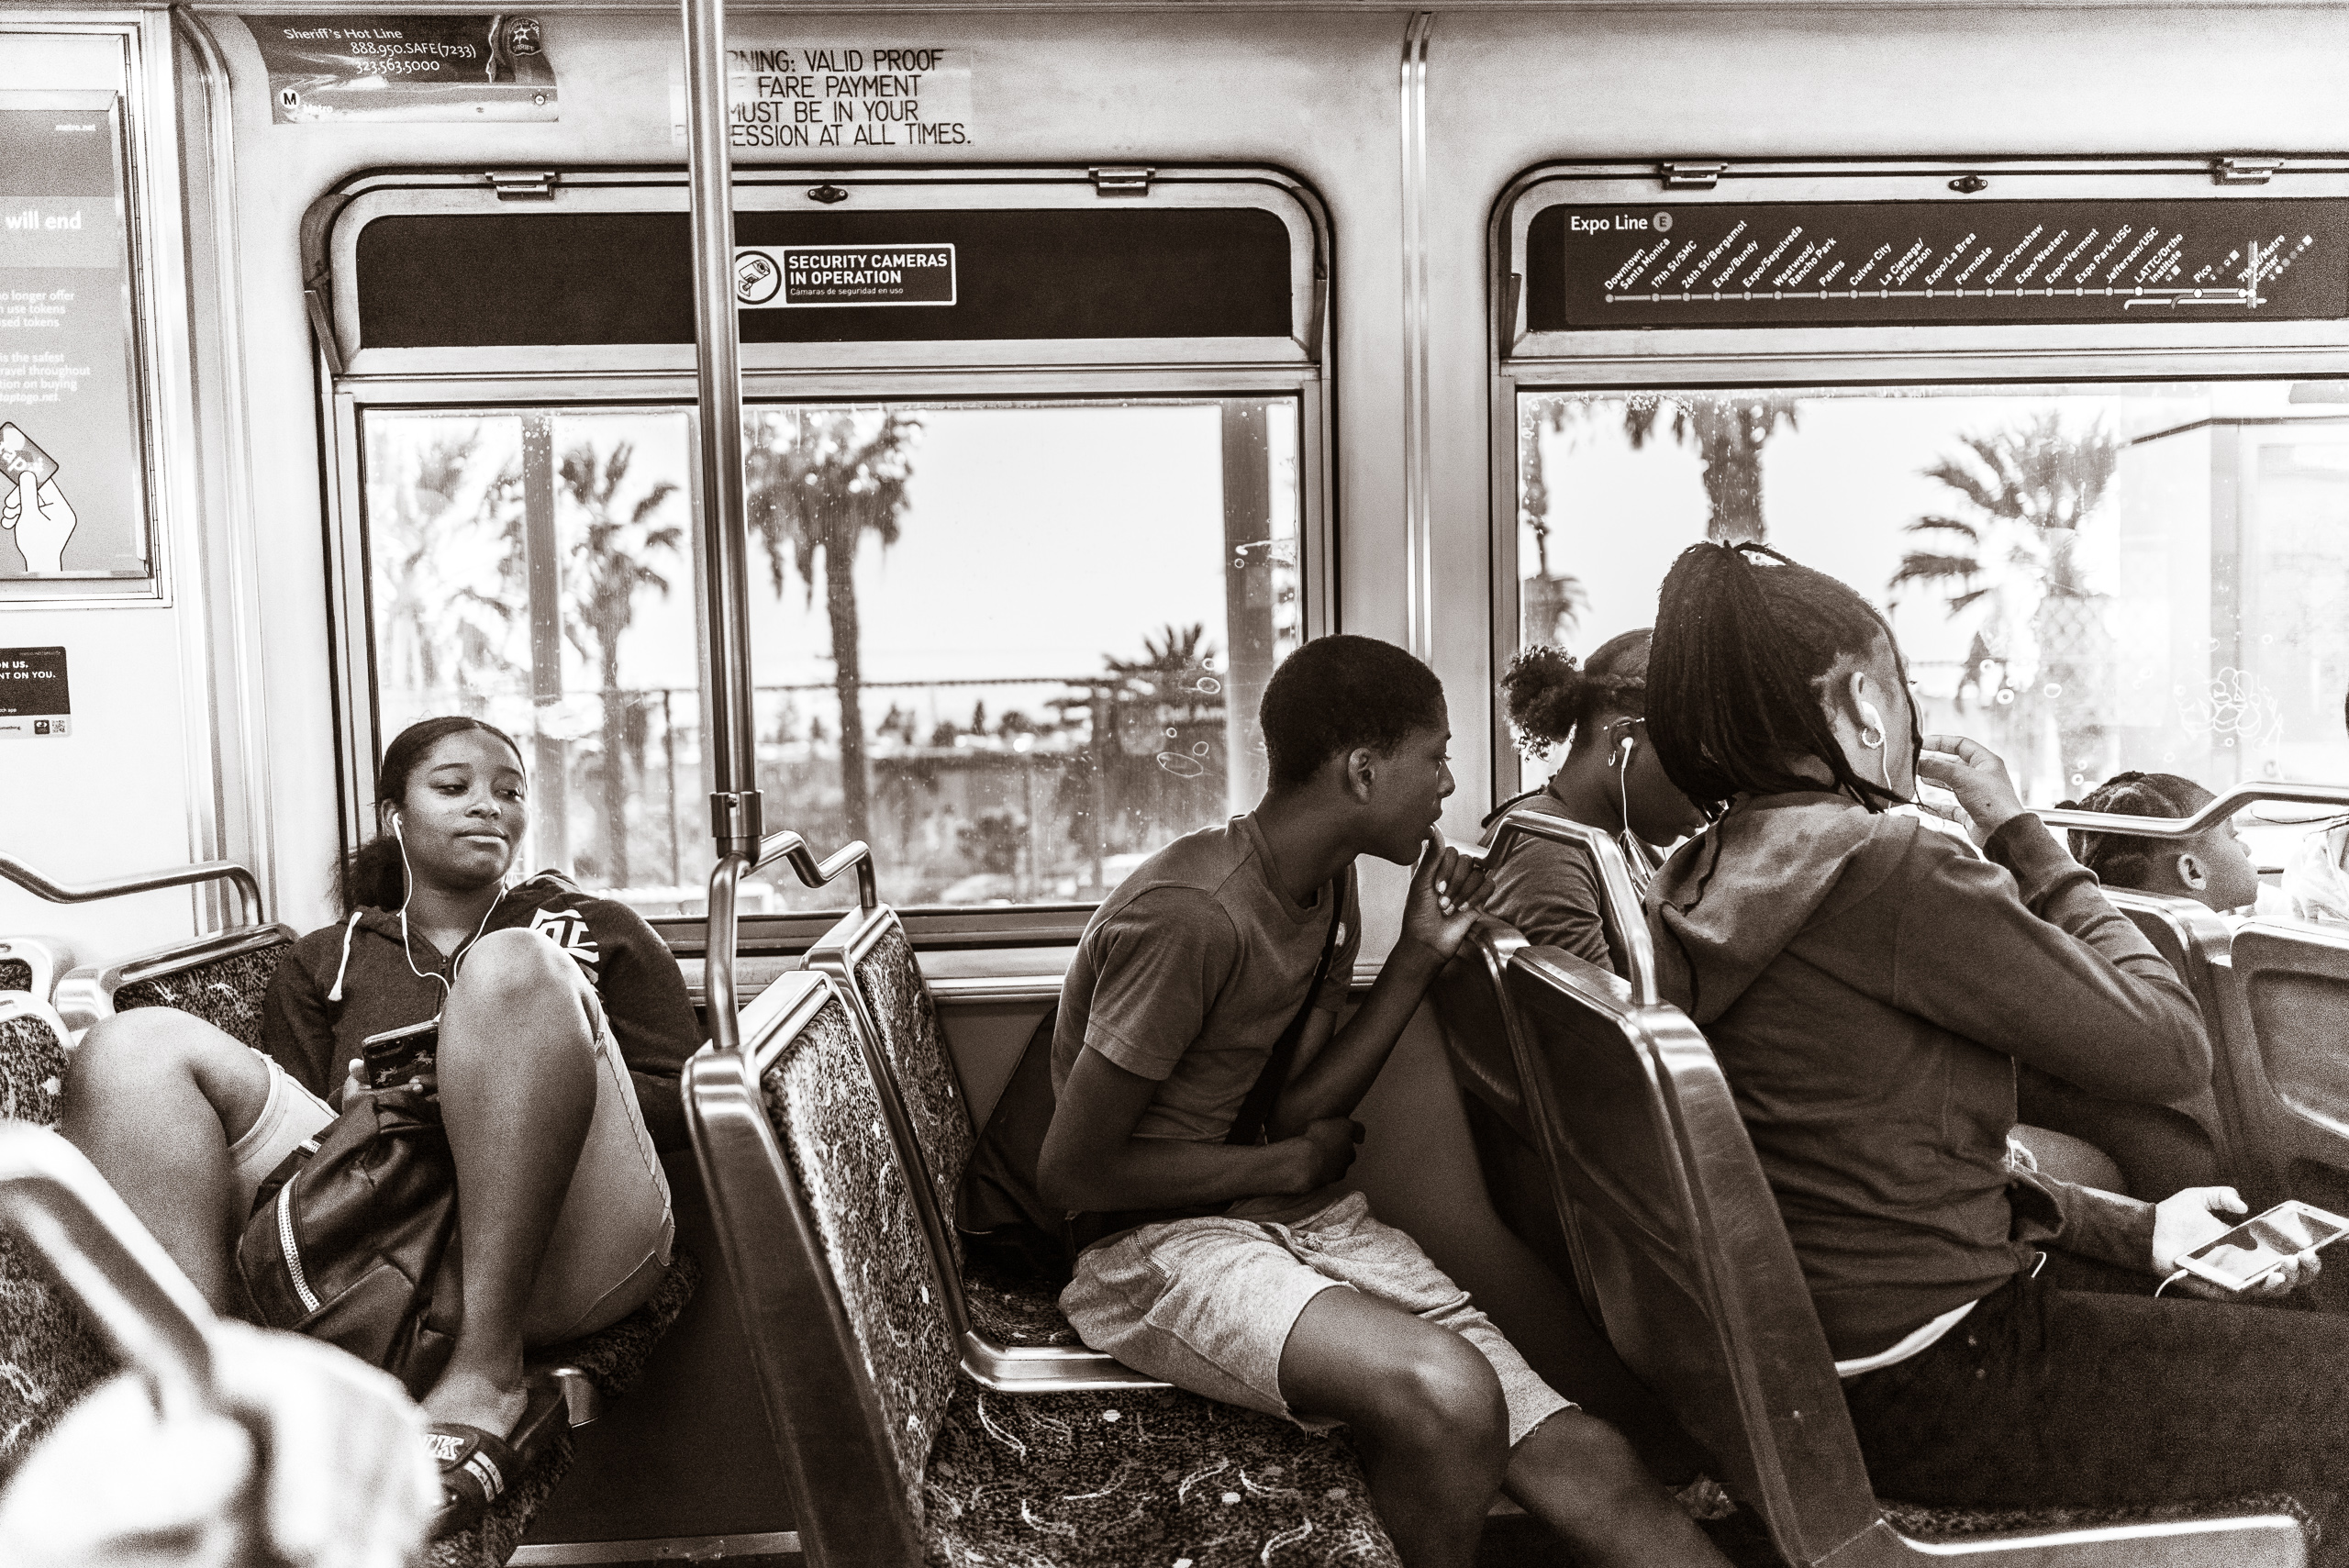 5 young people sit casually in 4 rows of seats on a Los Angeles Metro Blue Line light rail train heading North, from Long Beach to Los Angeles